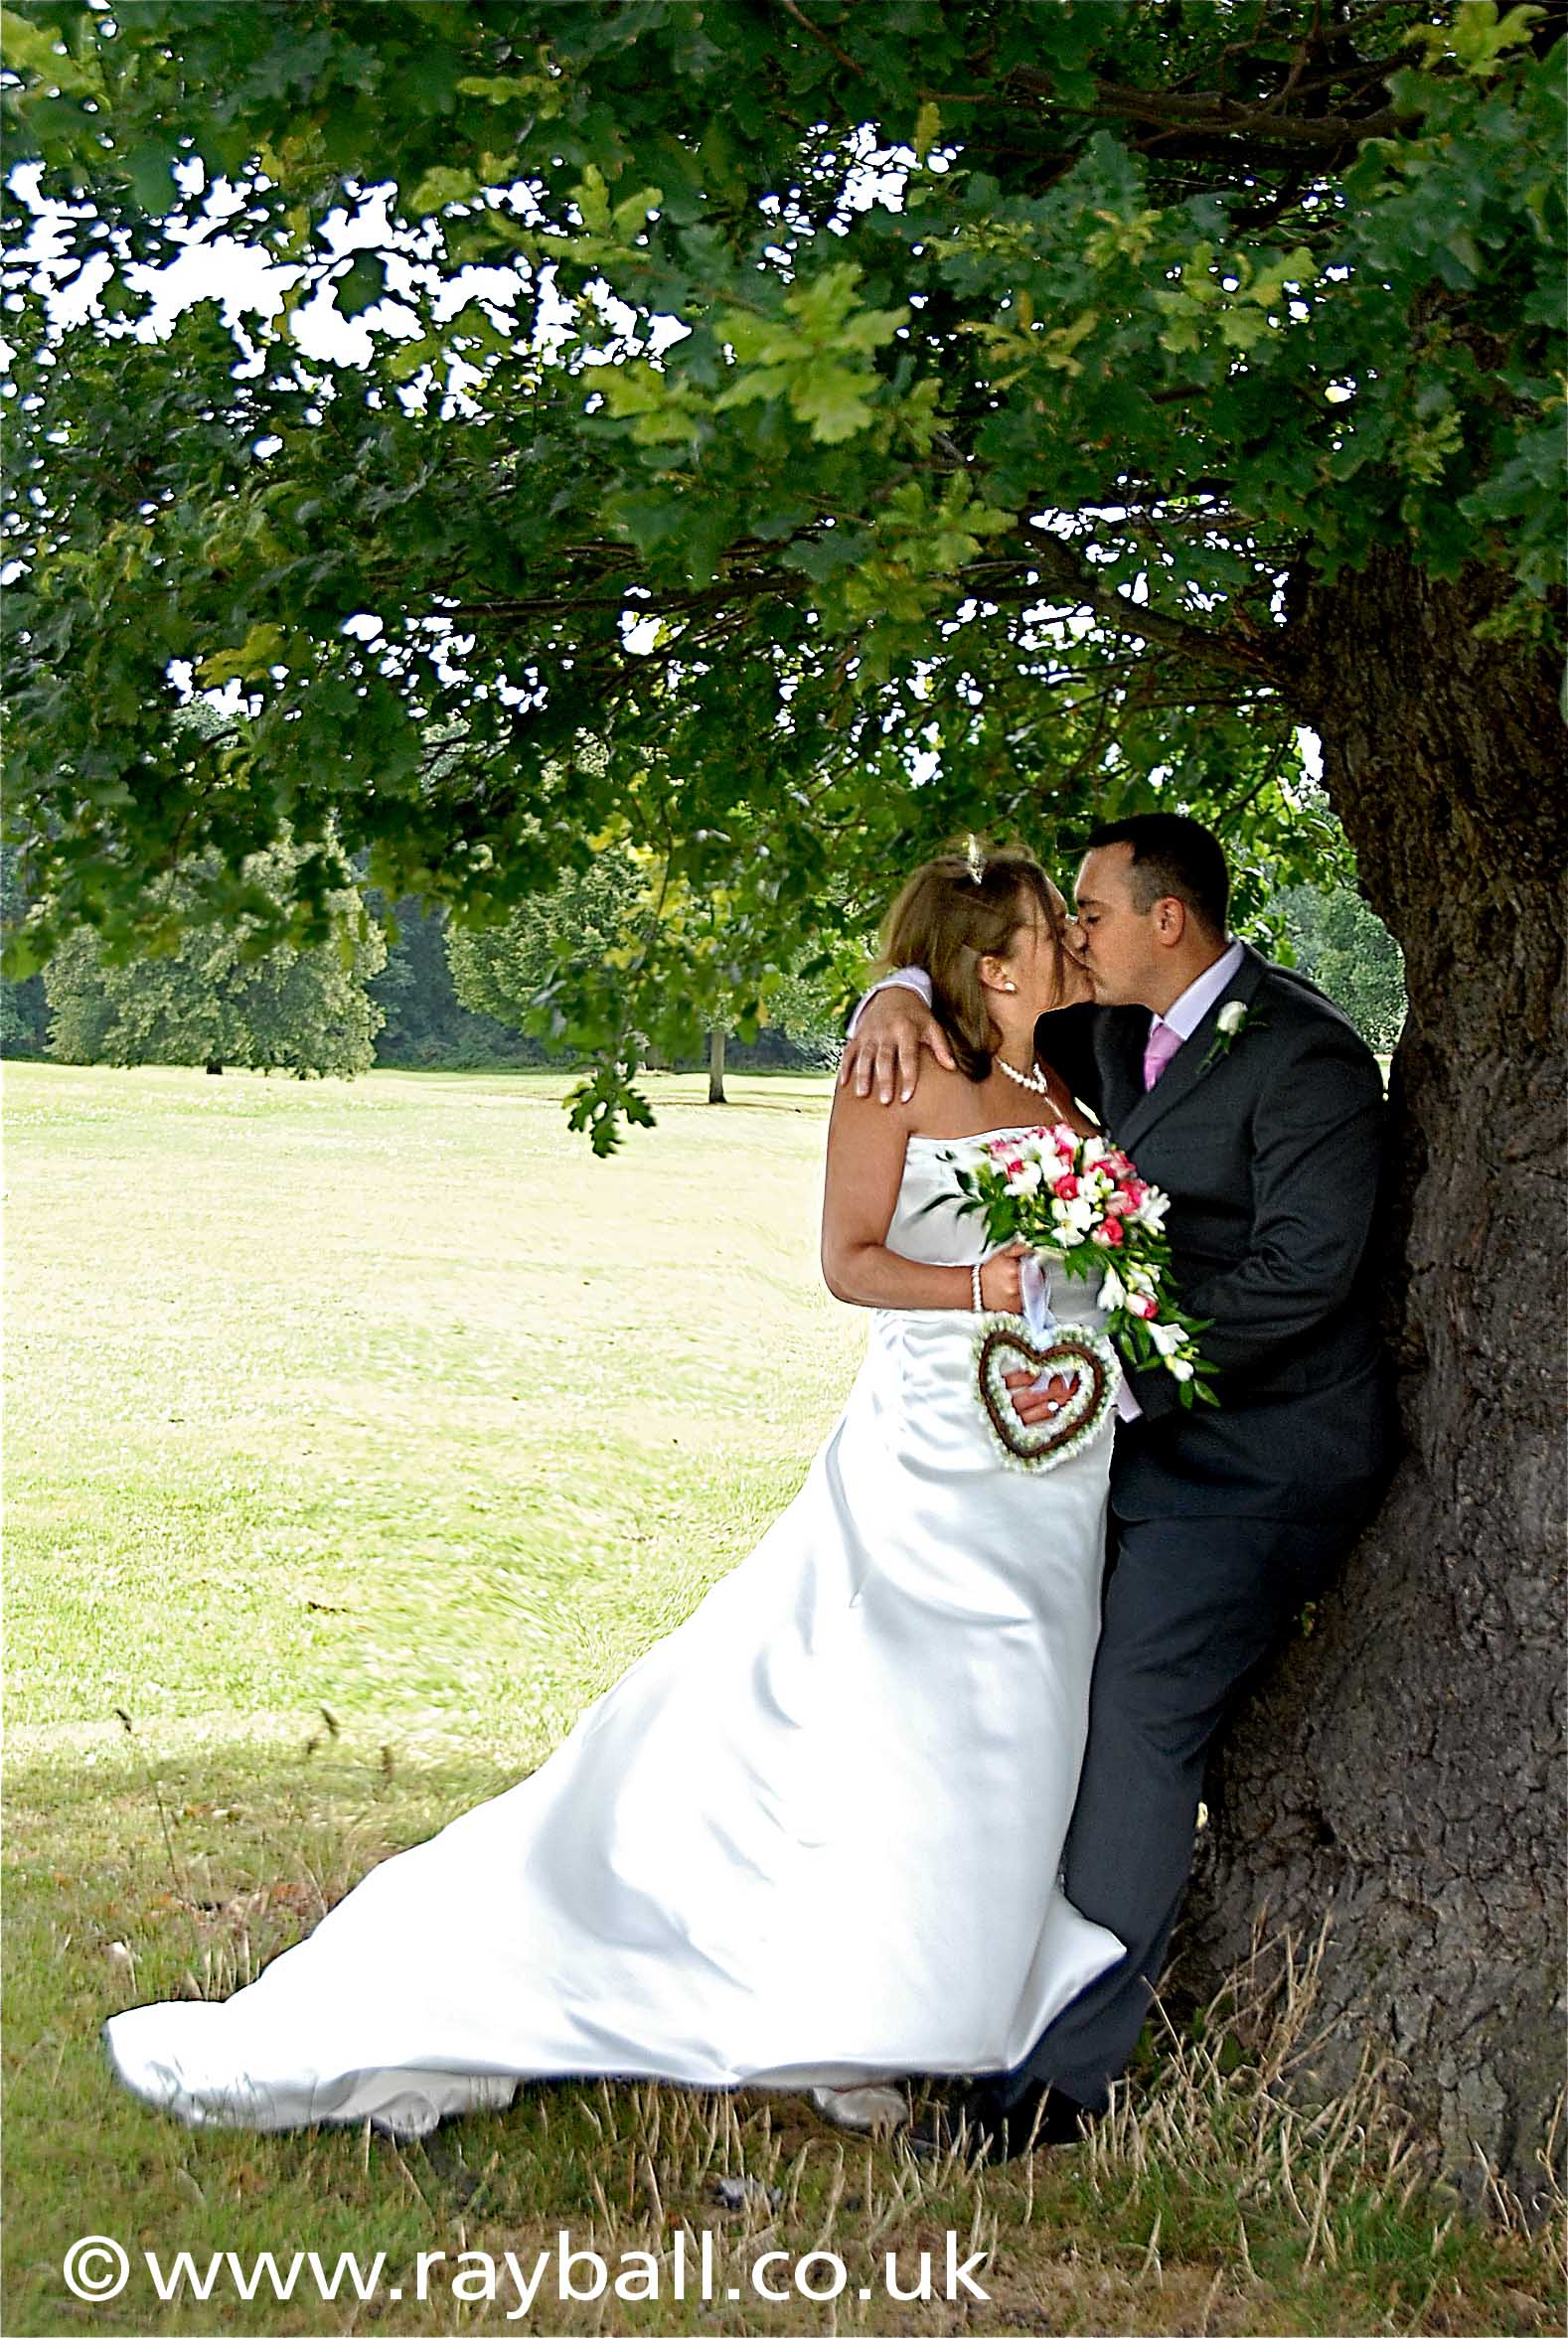 Mitcham couple Just married photographed in Morden Park, London by Epsom Photography Surrey.